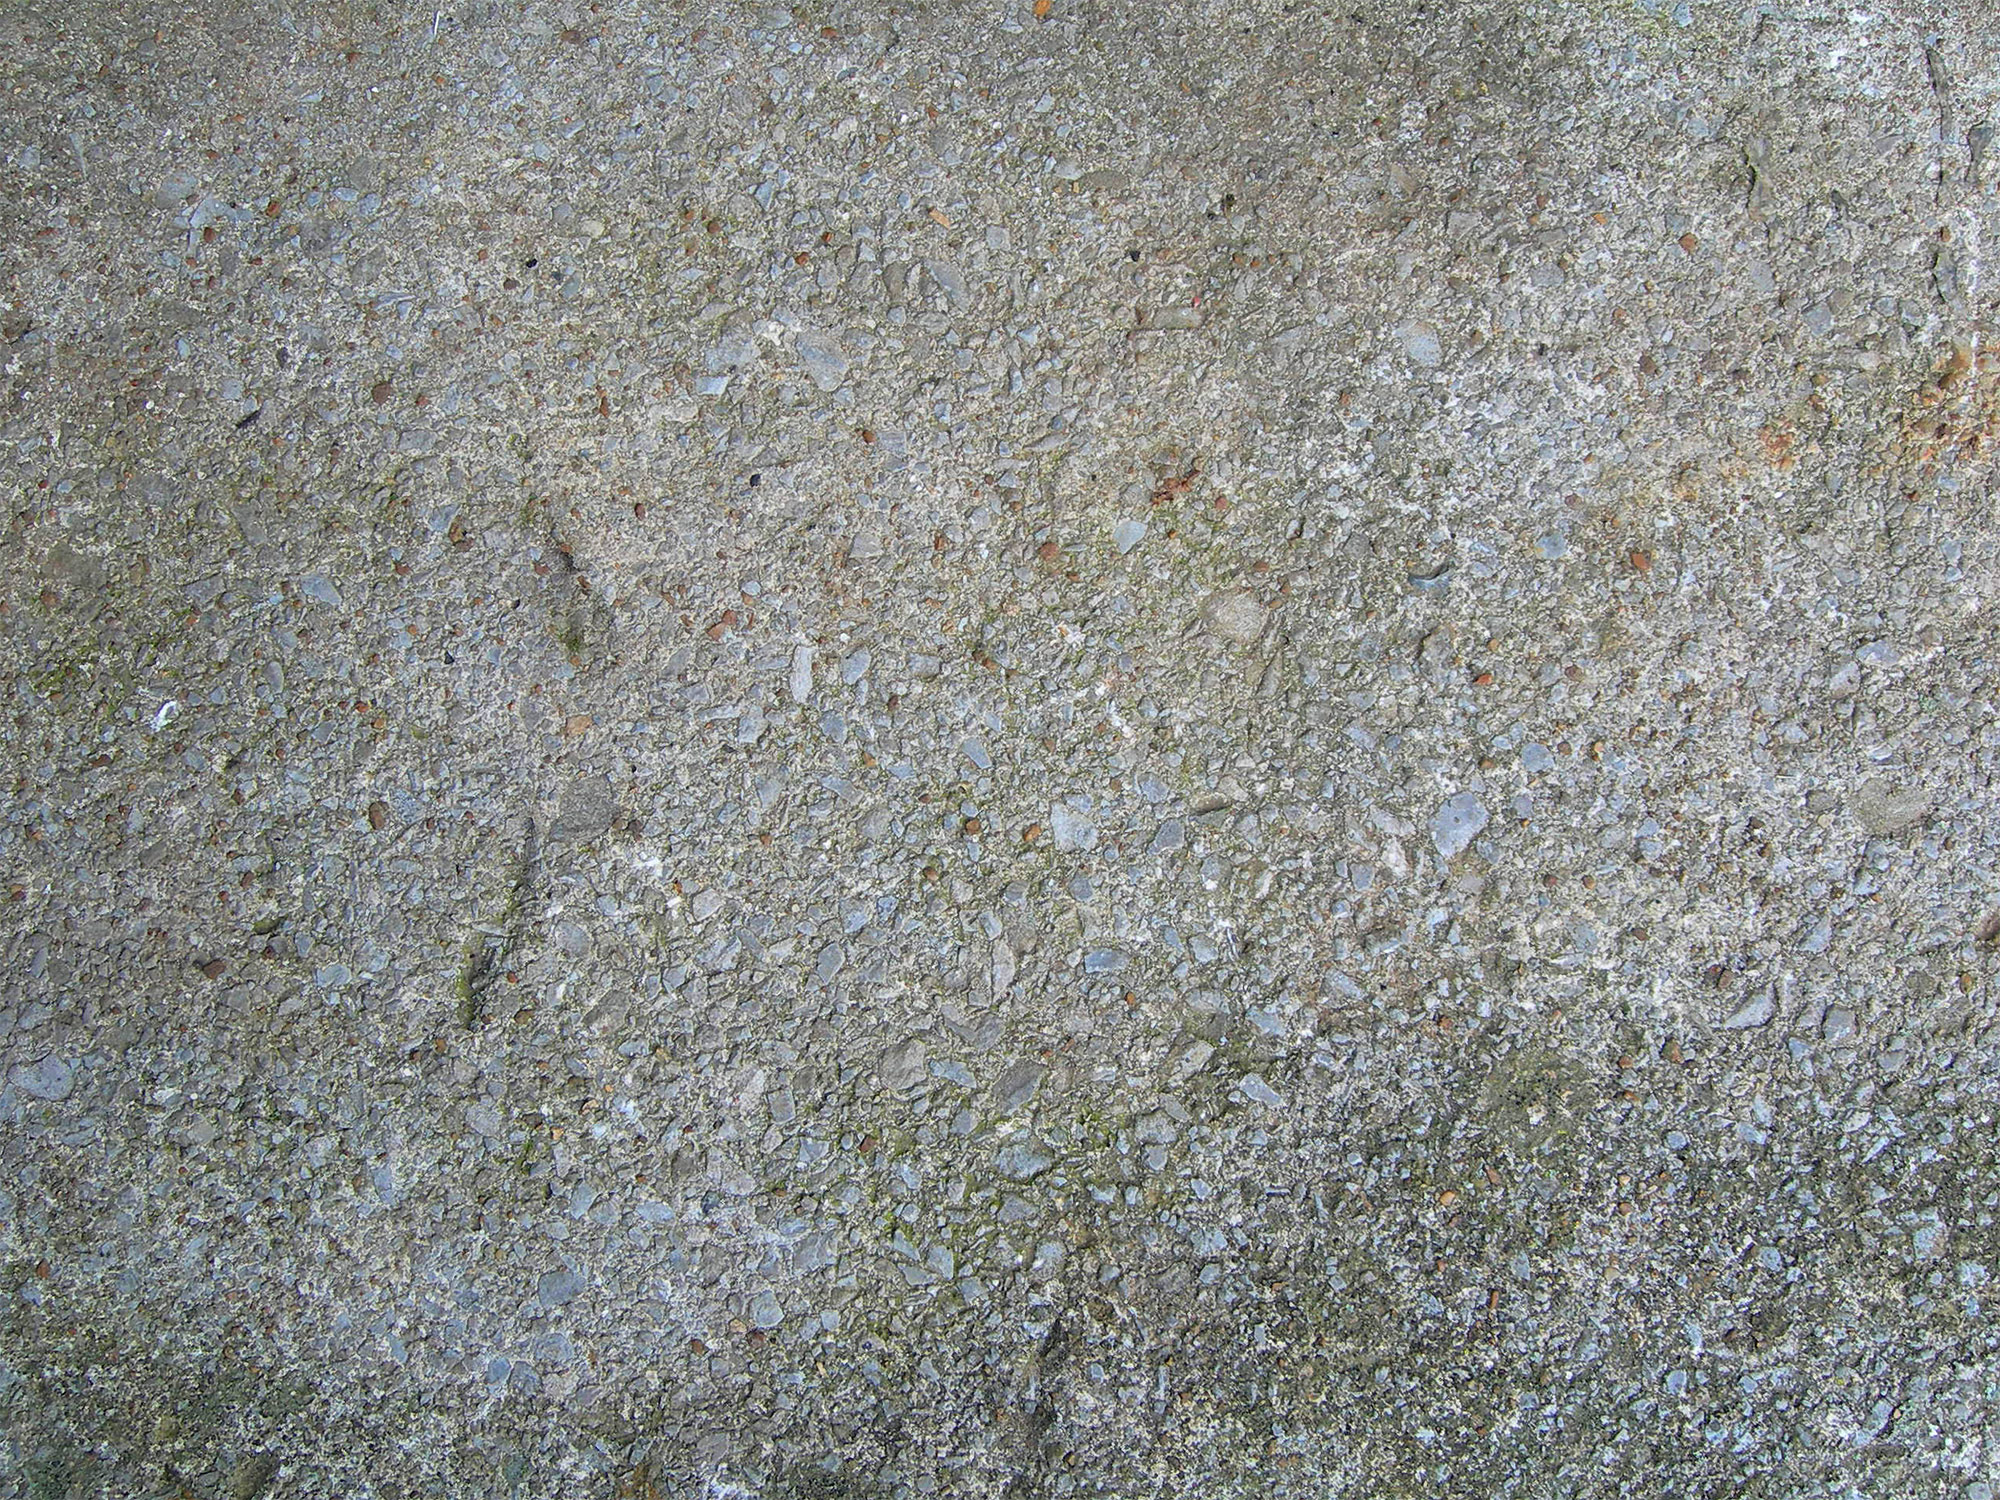 concrete, texture concrete, download photo, beton texture background, download